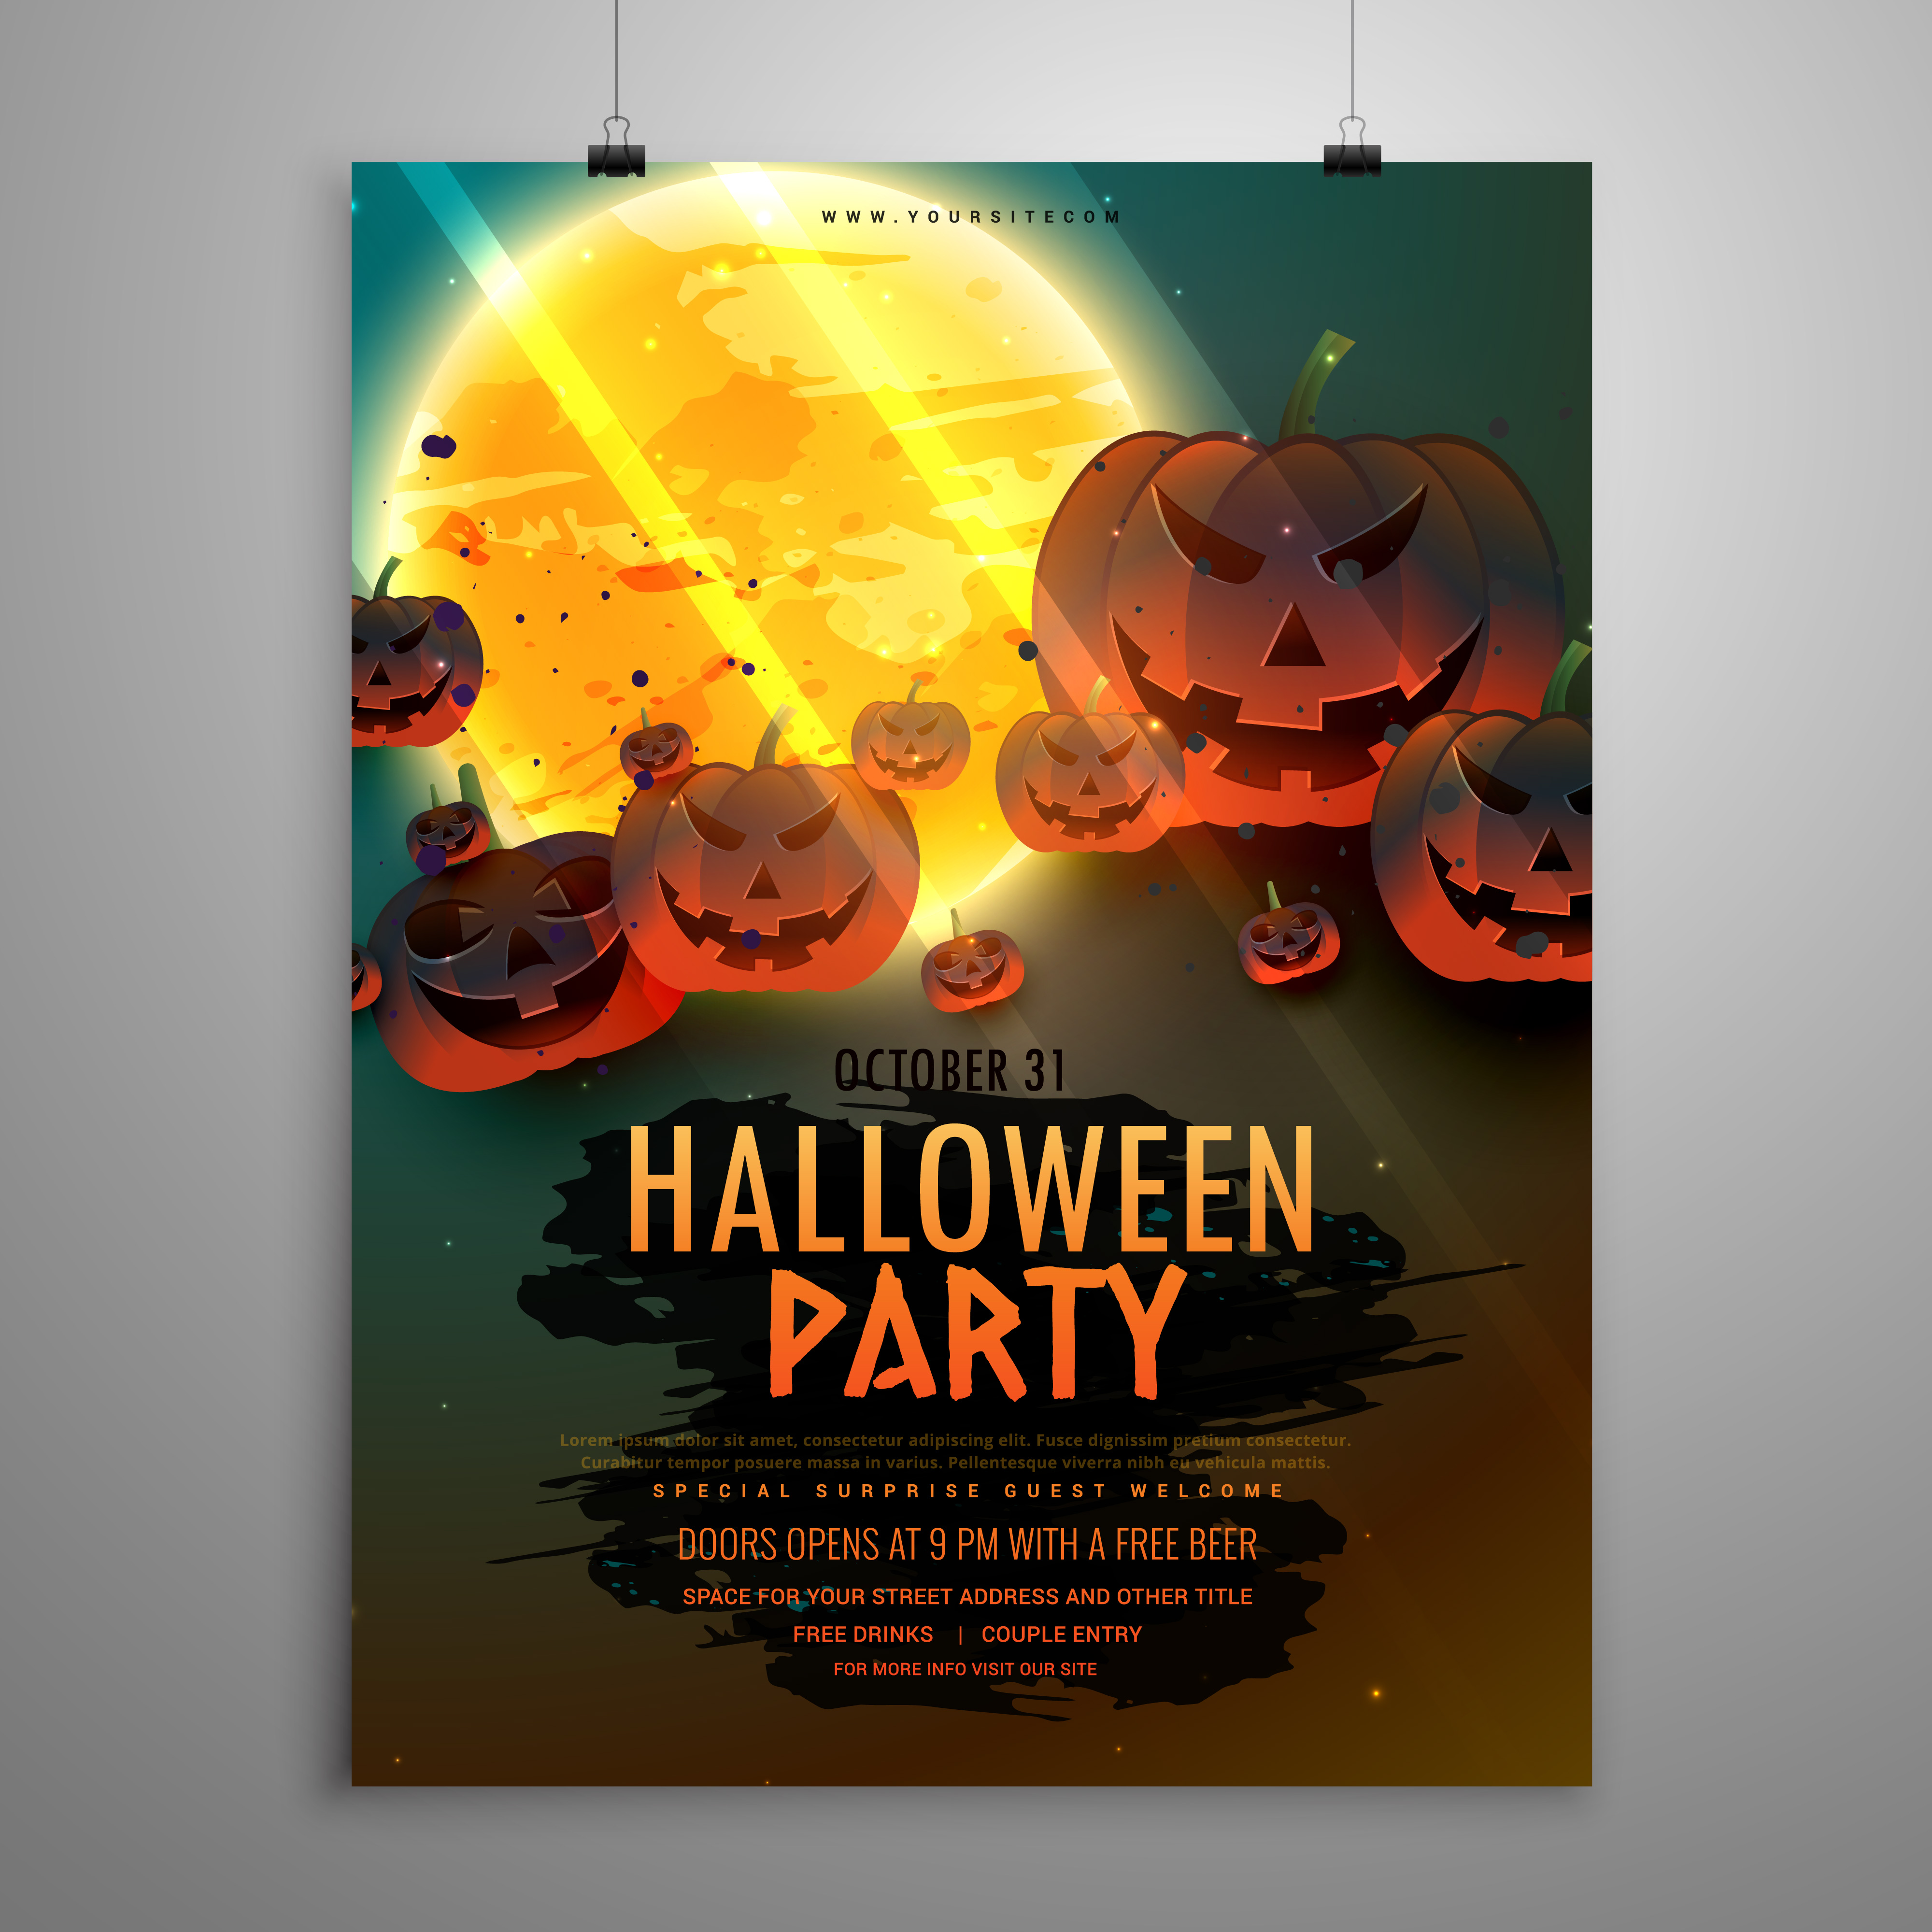 Halloween Flyer Free Vector Art